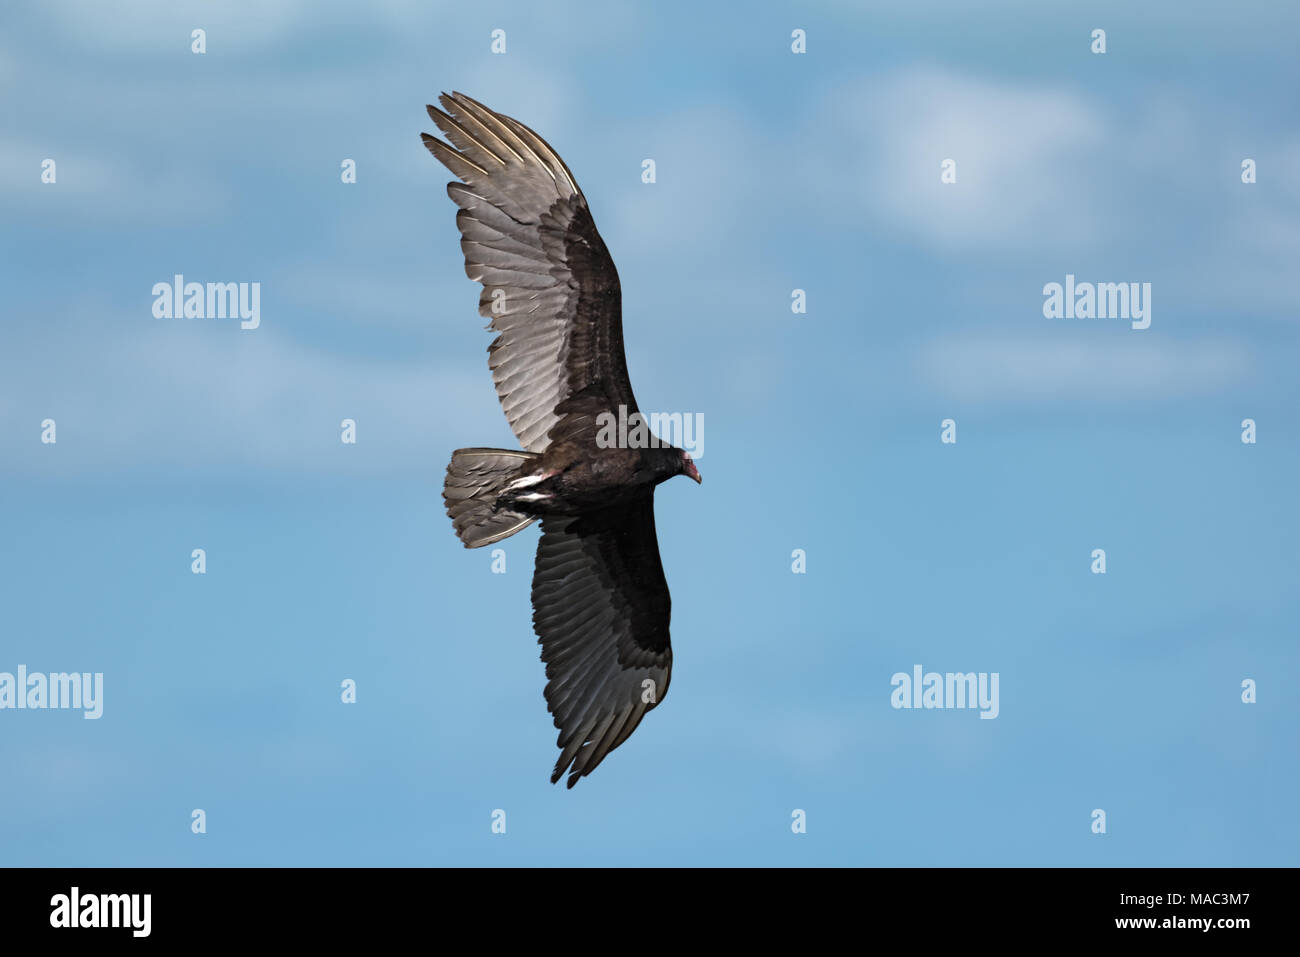 Turkey vulture (Cathartes aura) in flight over the Gulf of Mexico - Stock Image